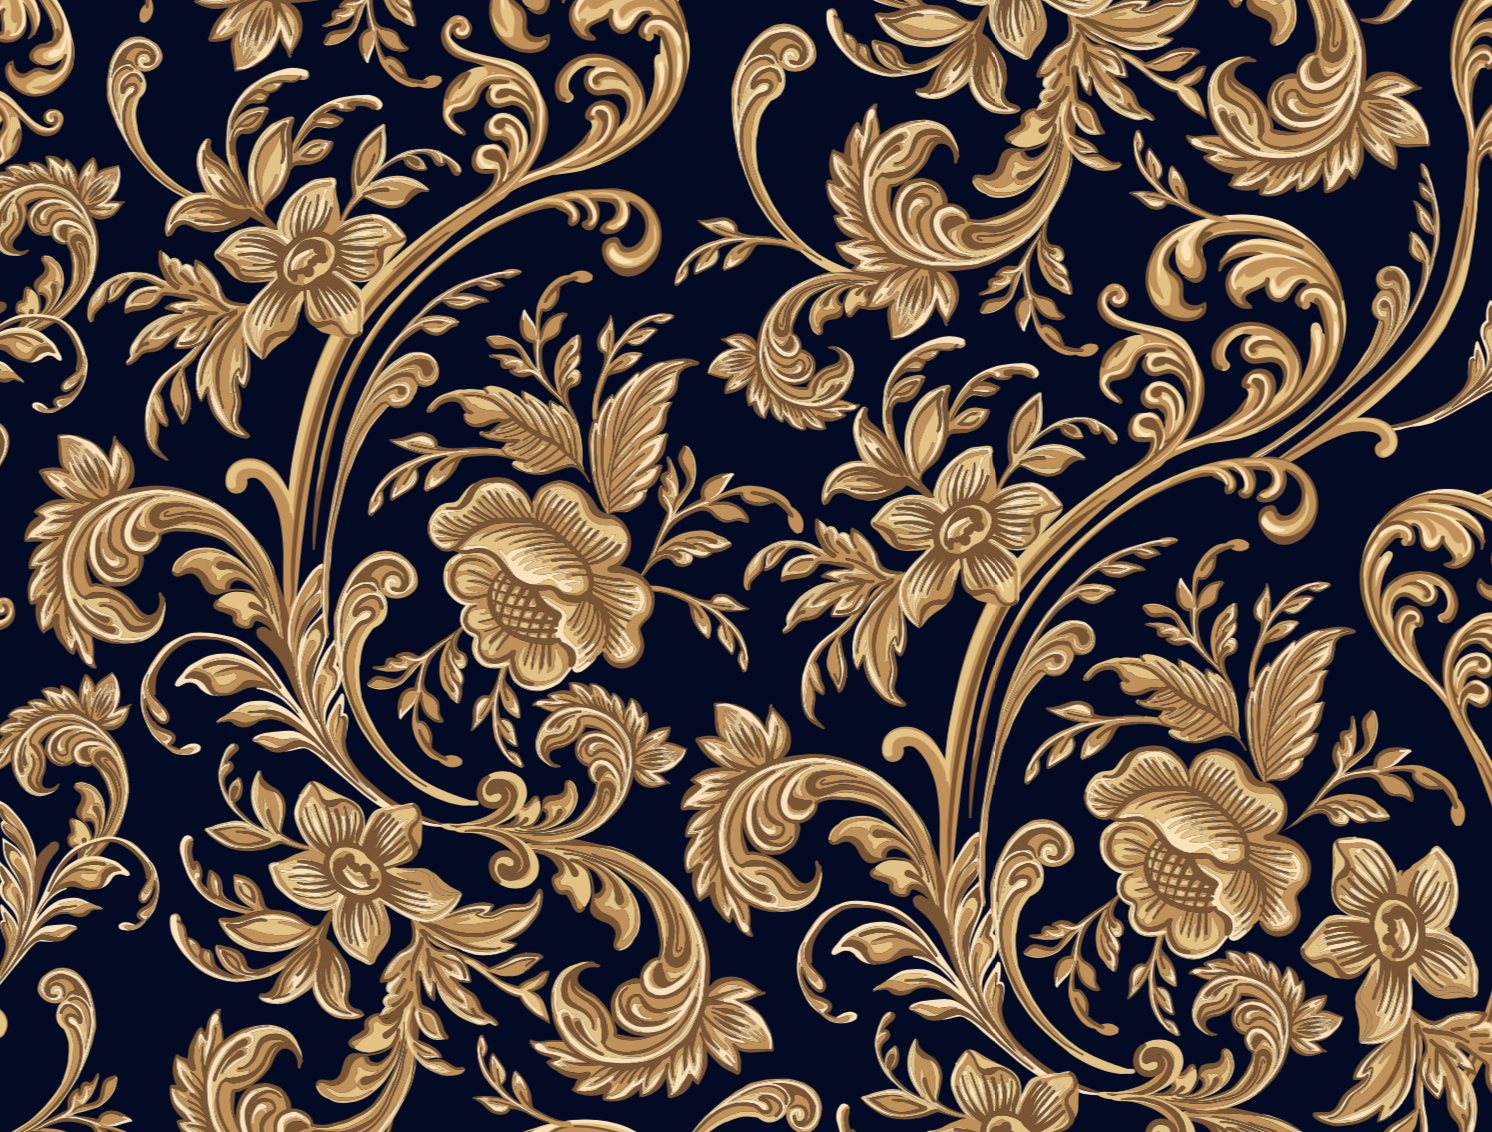 Design Inspiration Seamless Pattern Of A Decorative Gold Floral